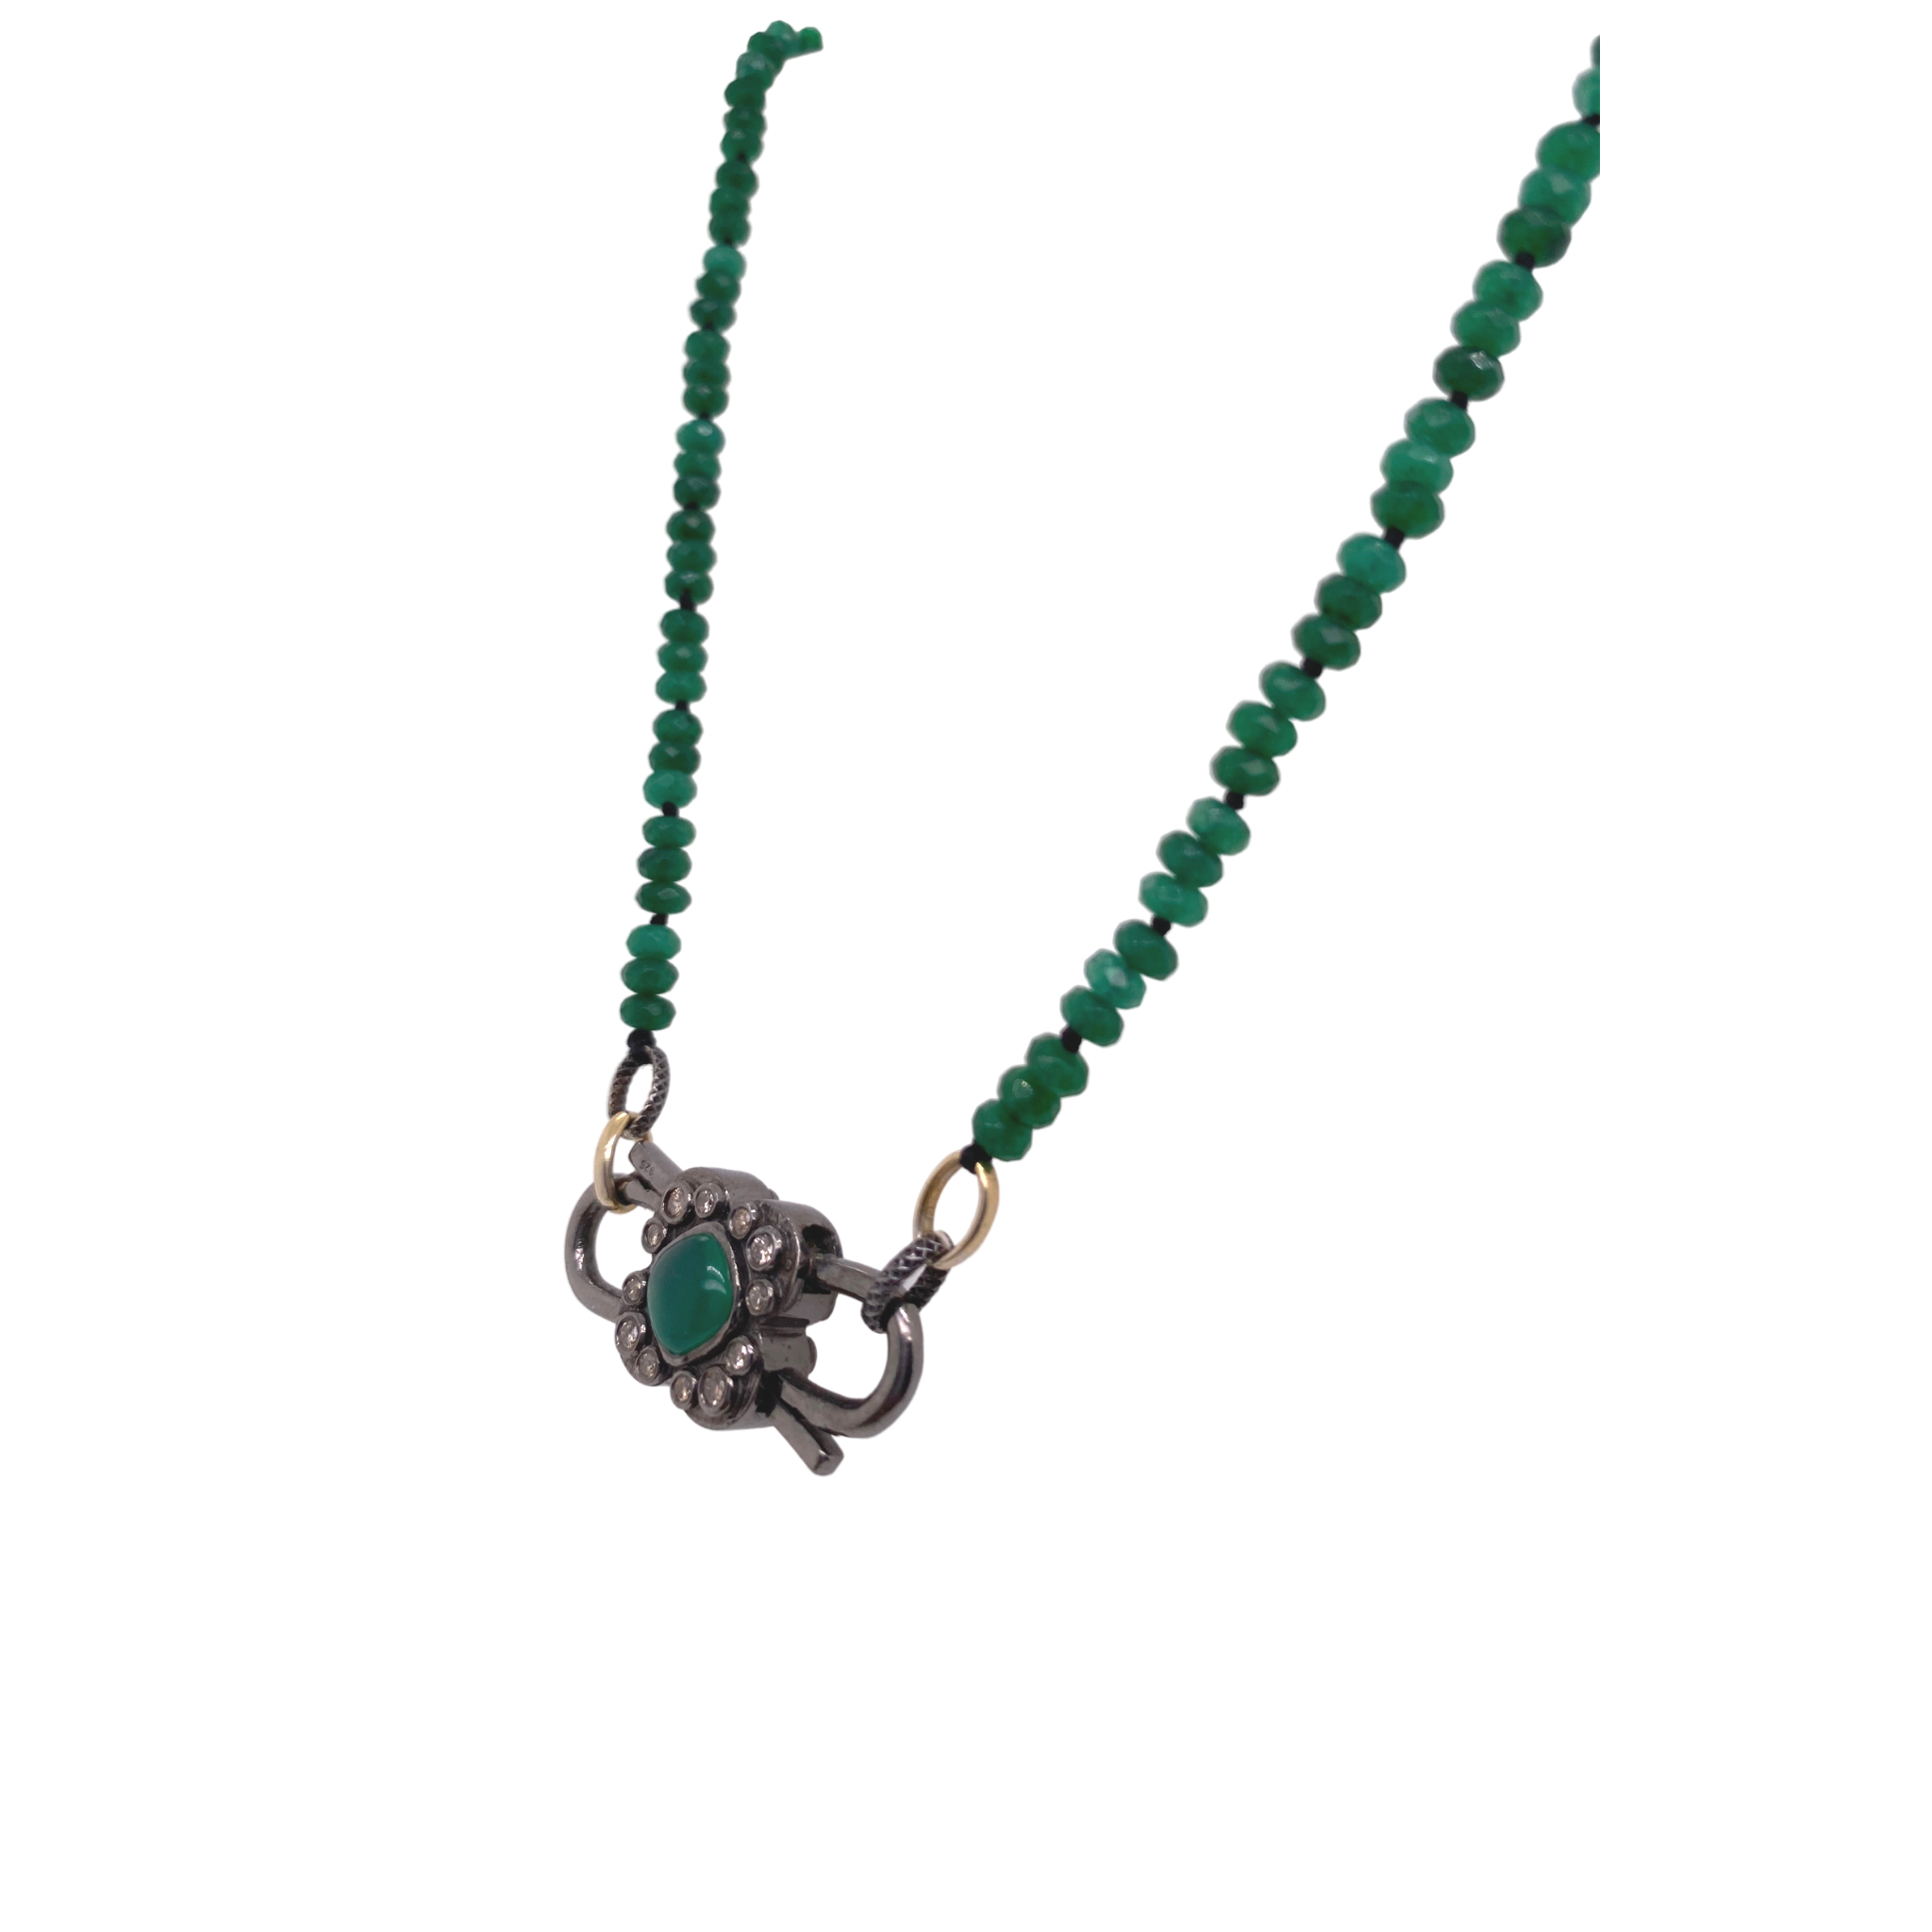 Luxe Green Jade Necklace